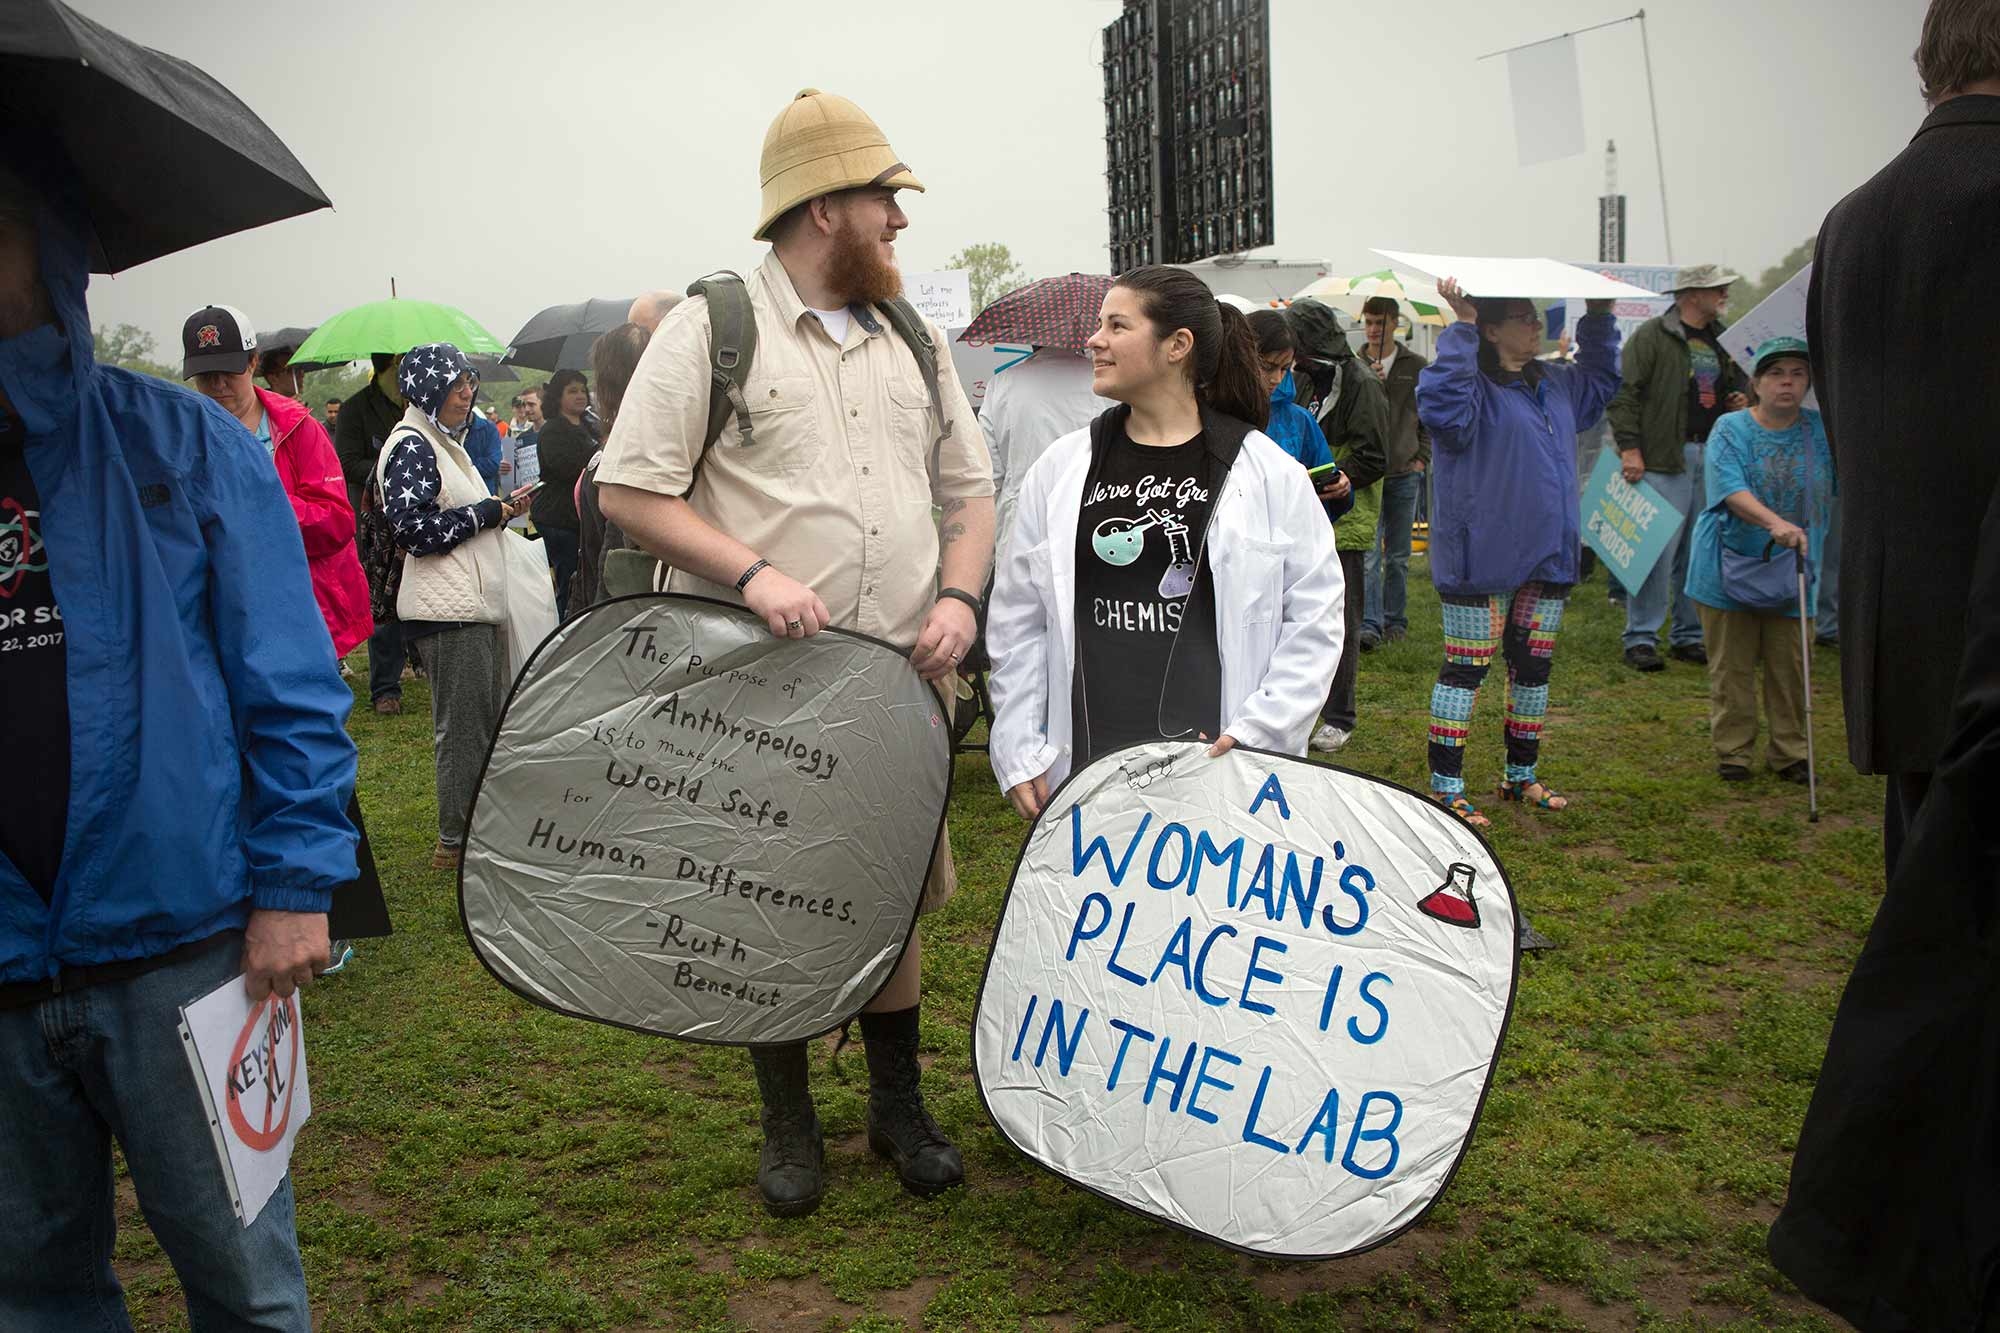 """""""A woman's place is in the lab,"""" reads a sign at the science march in Washington, DC."""